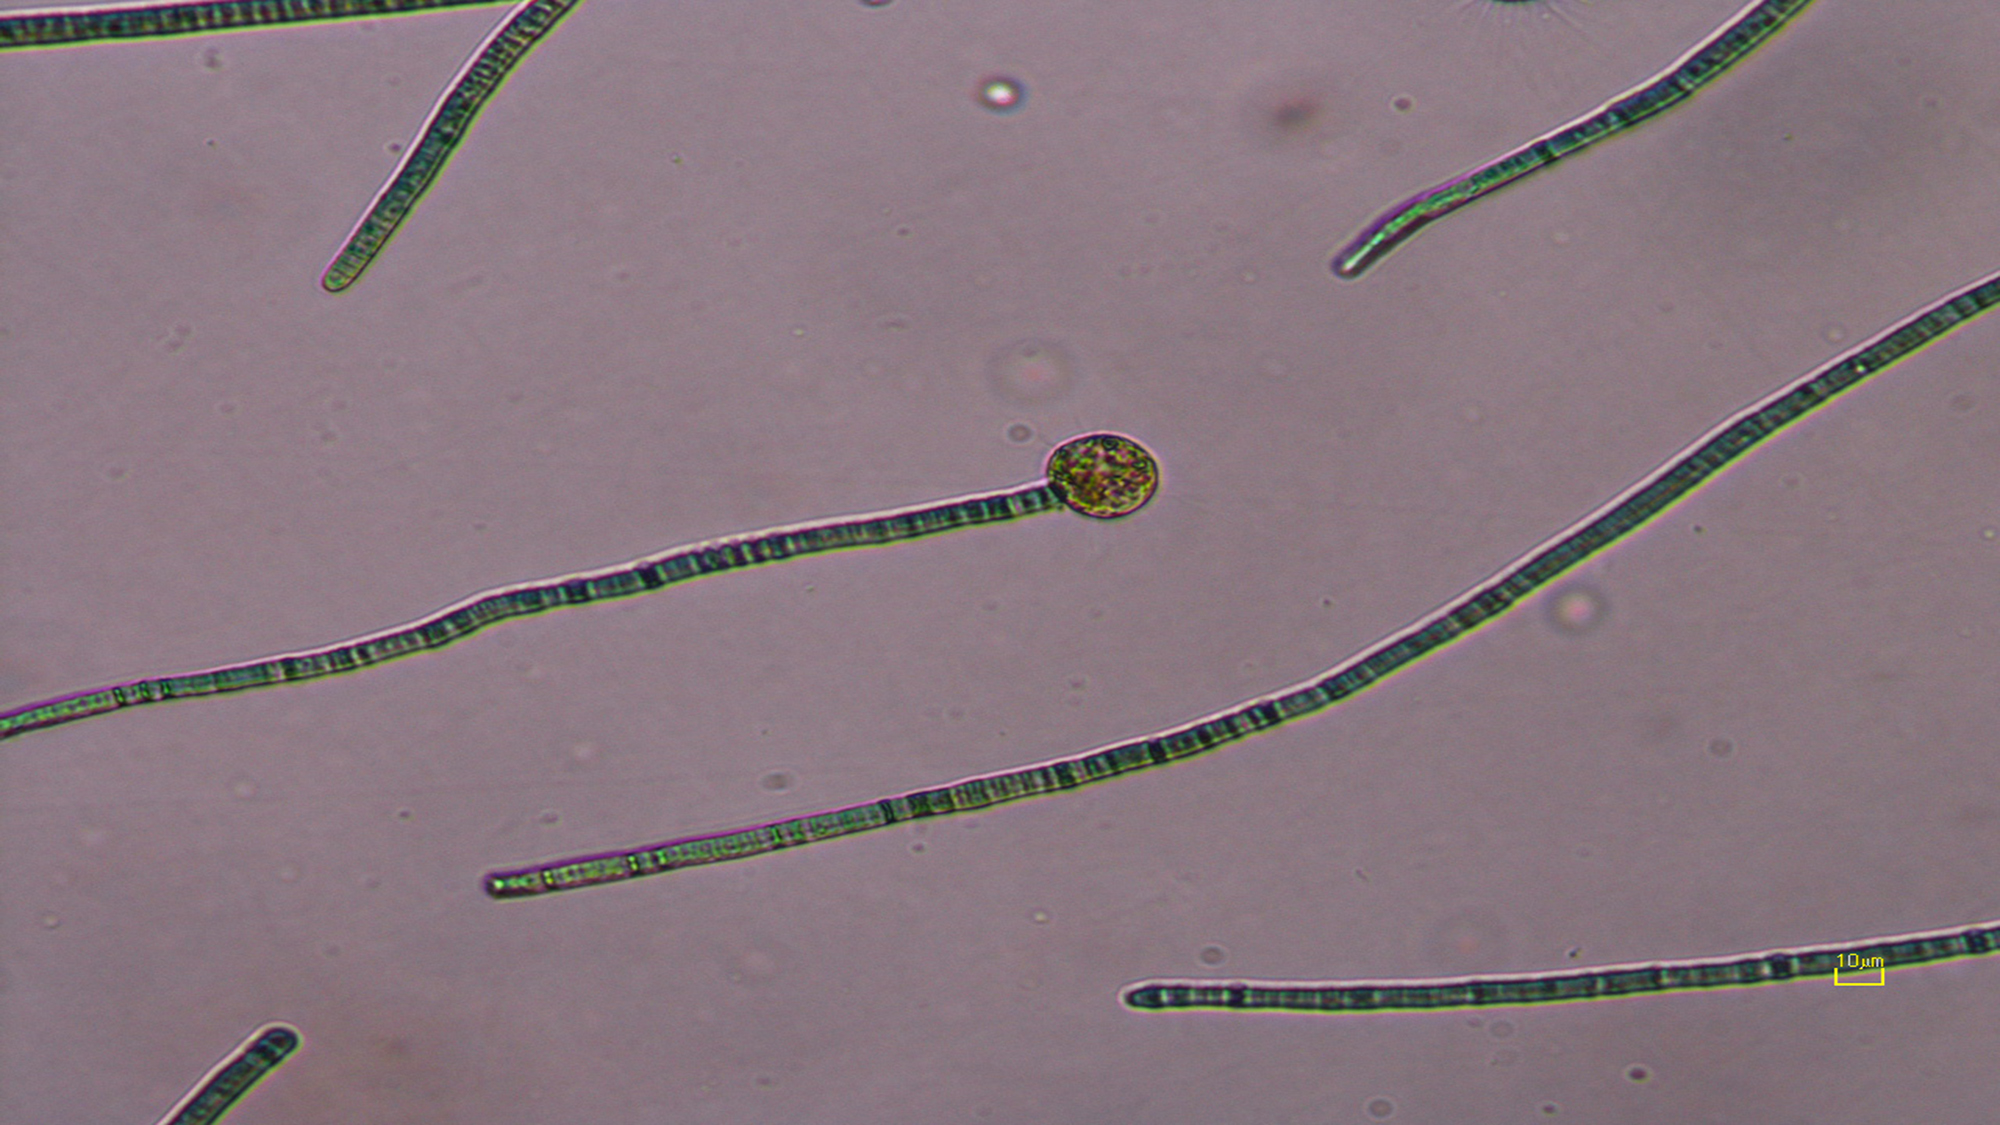 Nuclearia thermophila feeding on cyanobacteria.